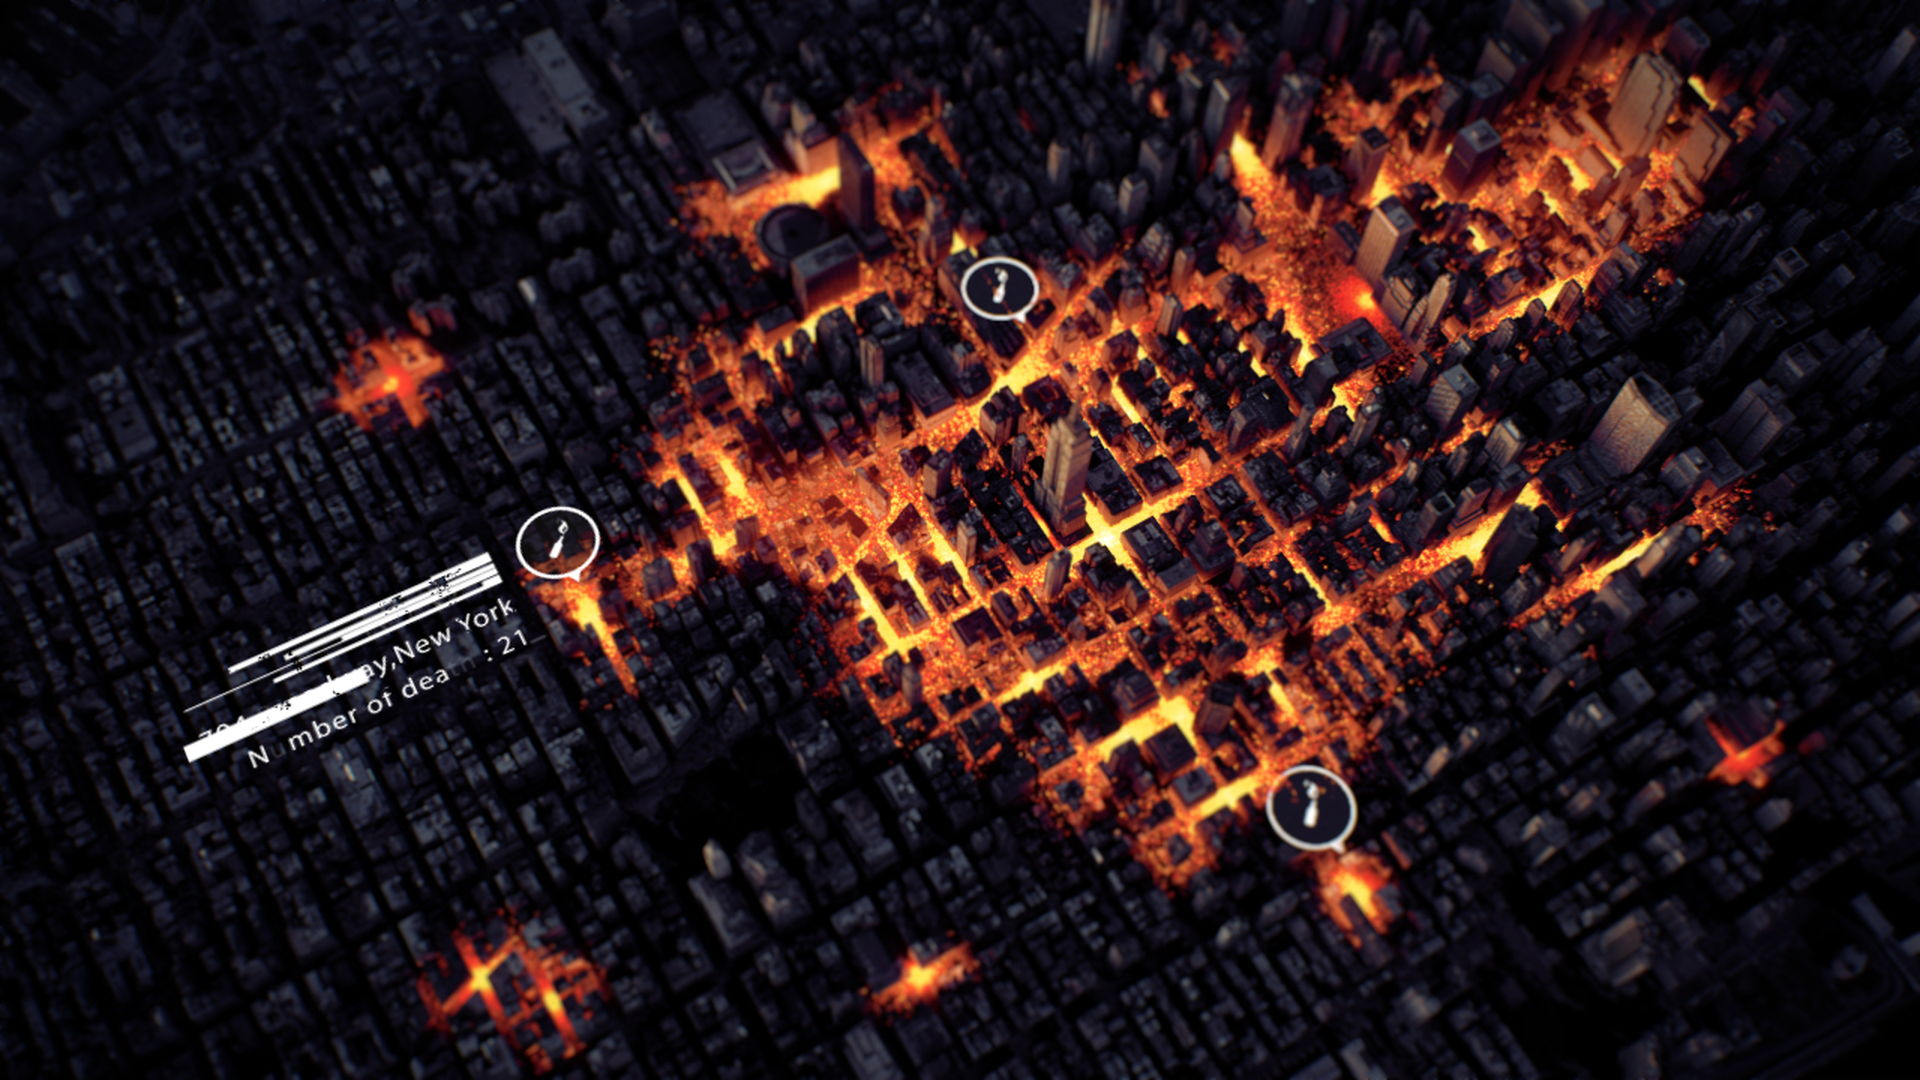 Top Shot of New York with luminous particles simulation spreading into the streets